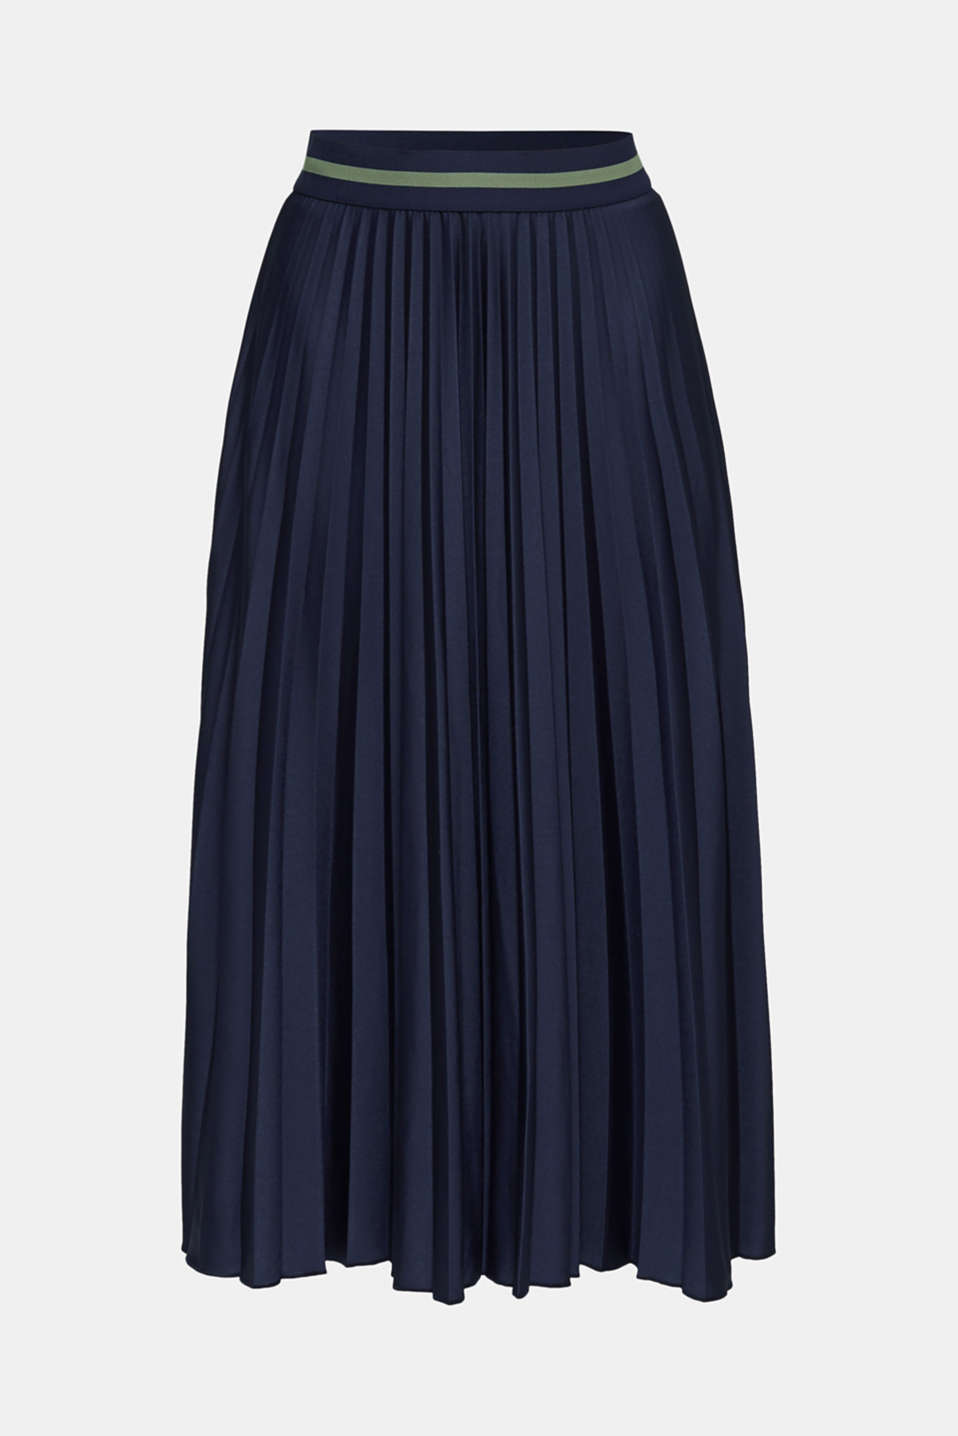 Stretch jersey skirt with accordion pleats, NAVY, detail image number 5